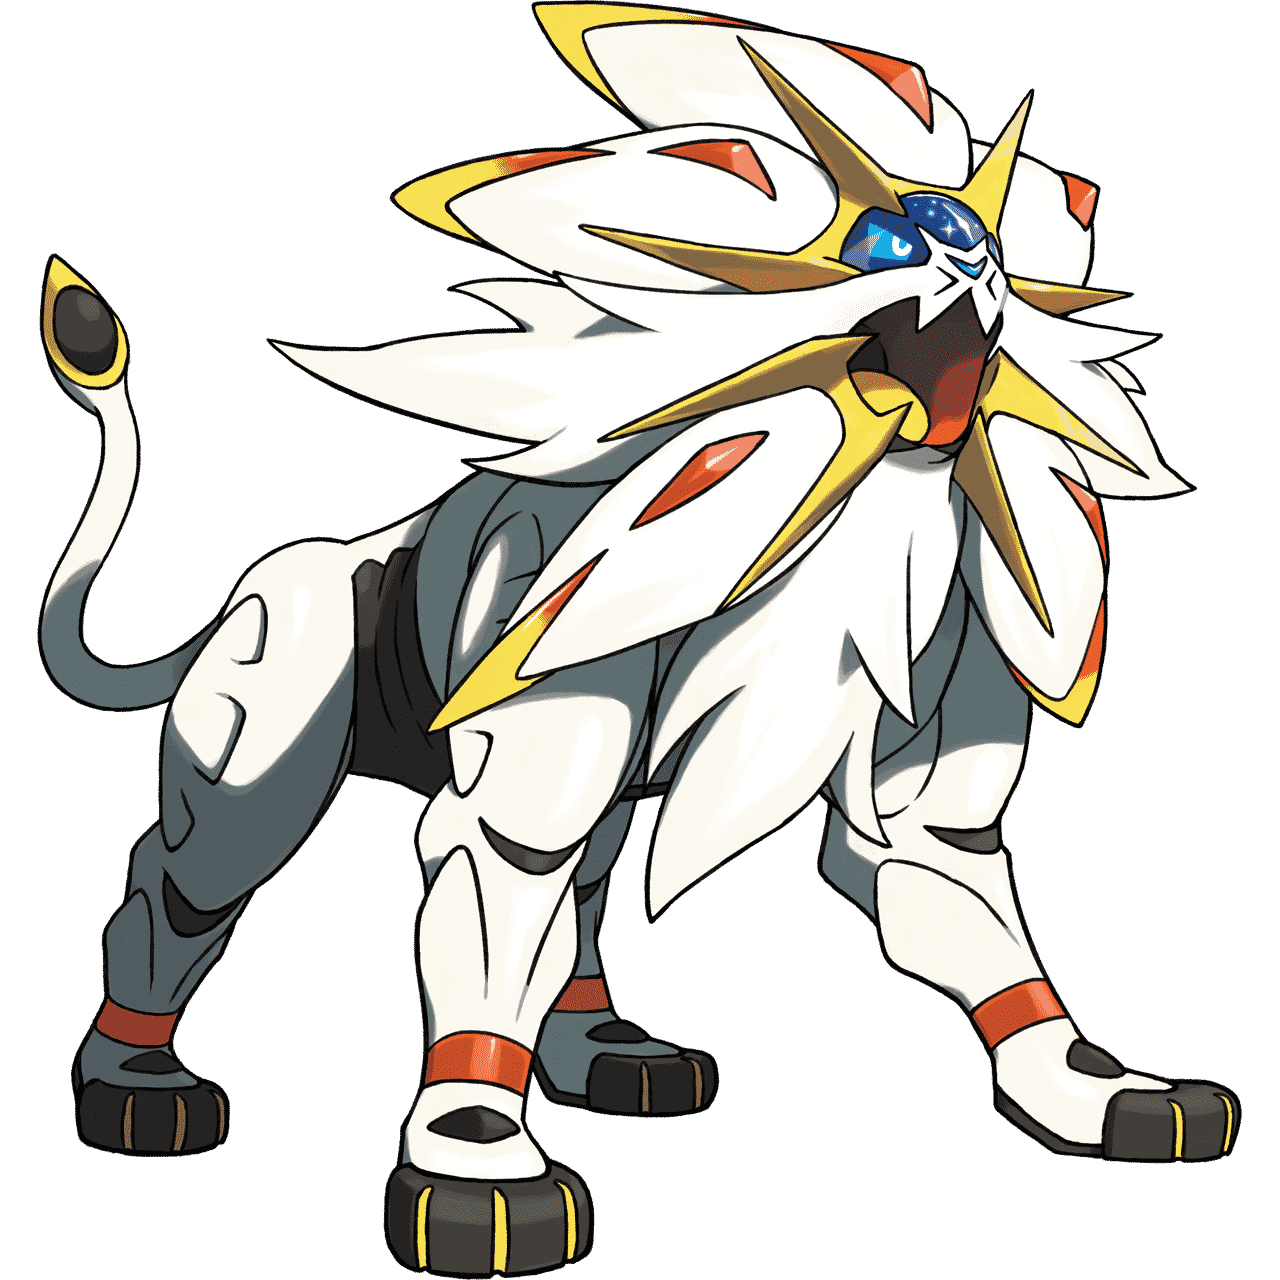 Pokémon Artwork Solgaleo